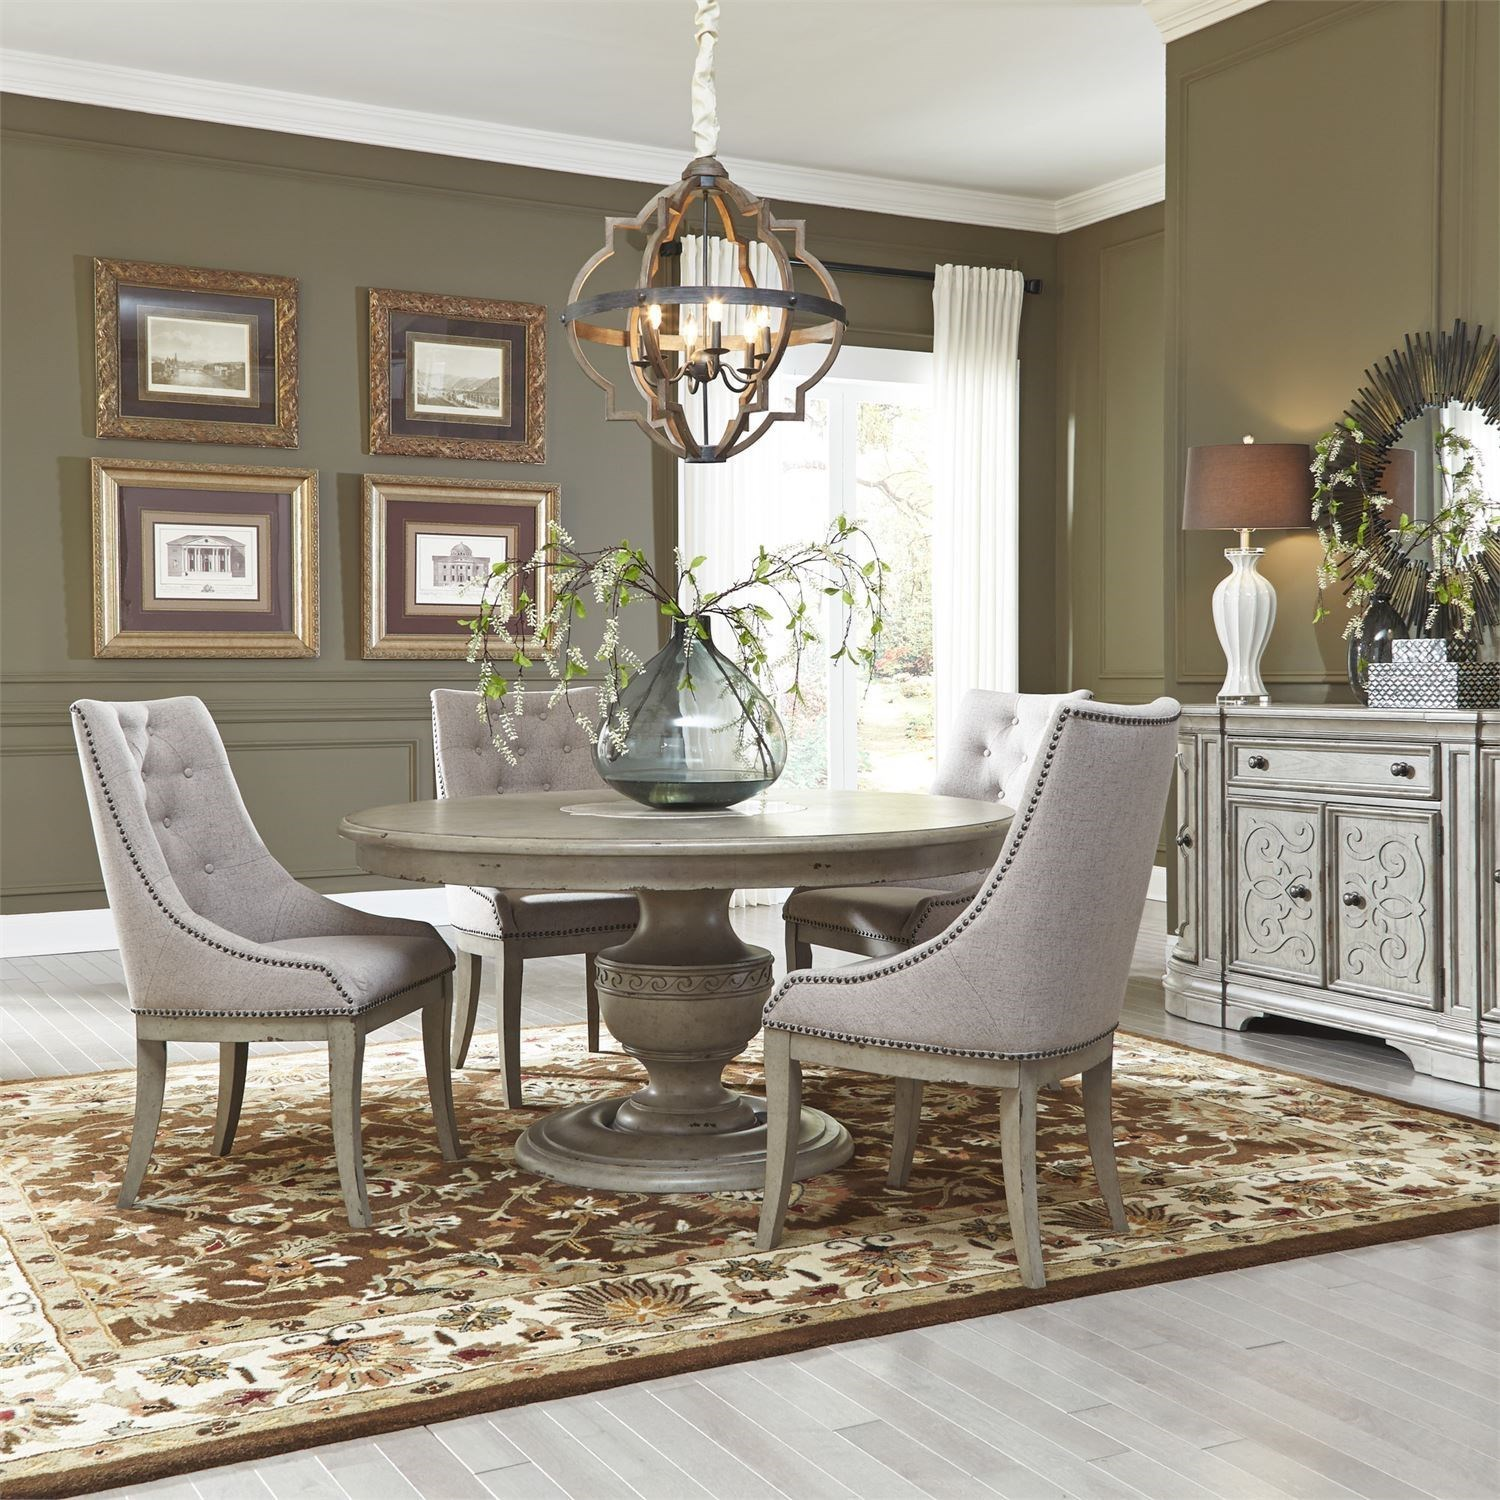 Messina Estates Seven Piece Traditional Dining Table And: Liberty Furniture Grand Estates 5 Piece Pedestal Table Set